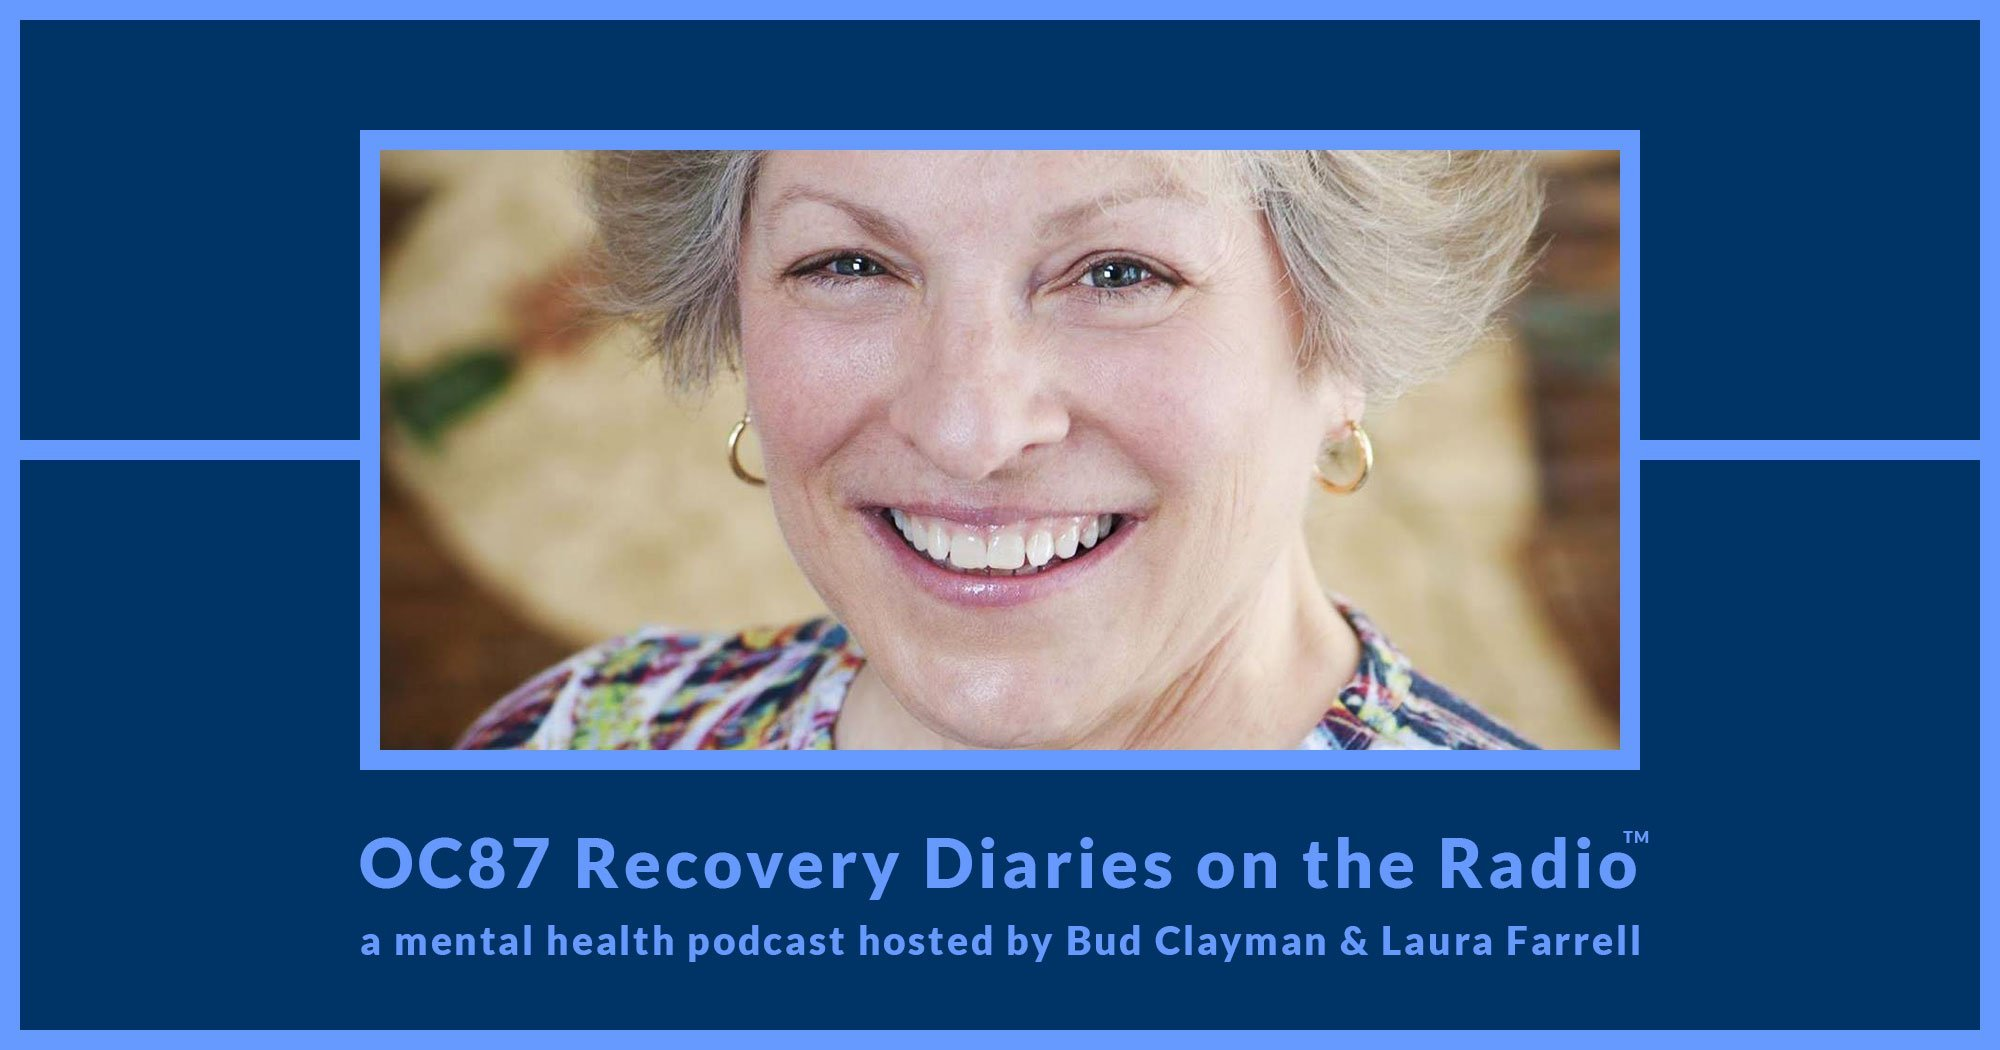 Episode 5 – Talking About Grief and Loss, with Social Worker Nancy Willis